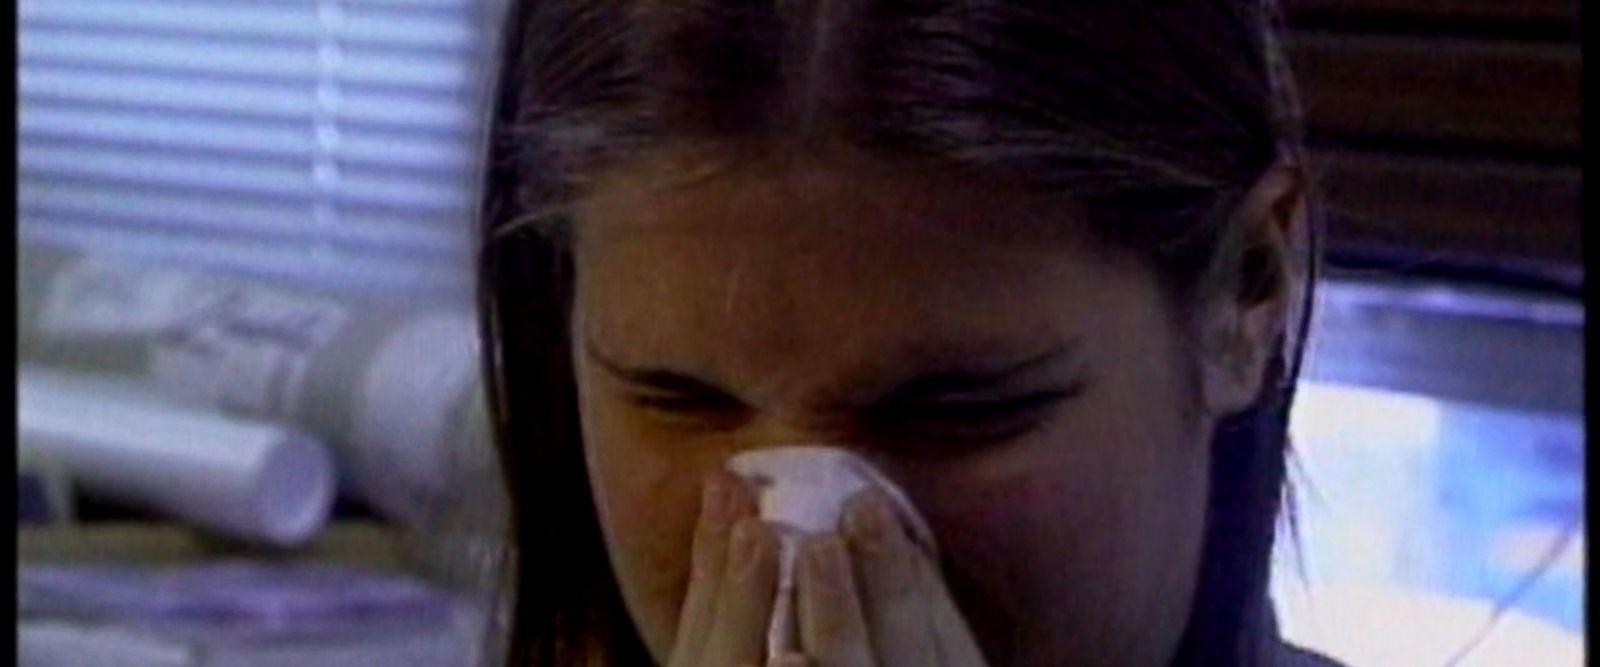 Study found people who felt lonelier were more likely to report worse cold symptoms.